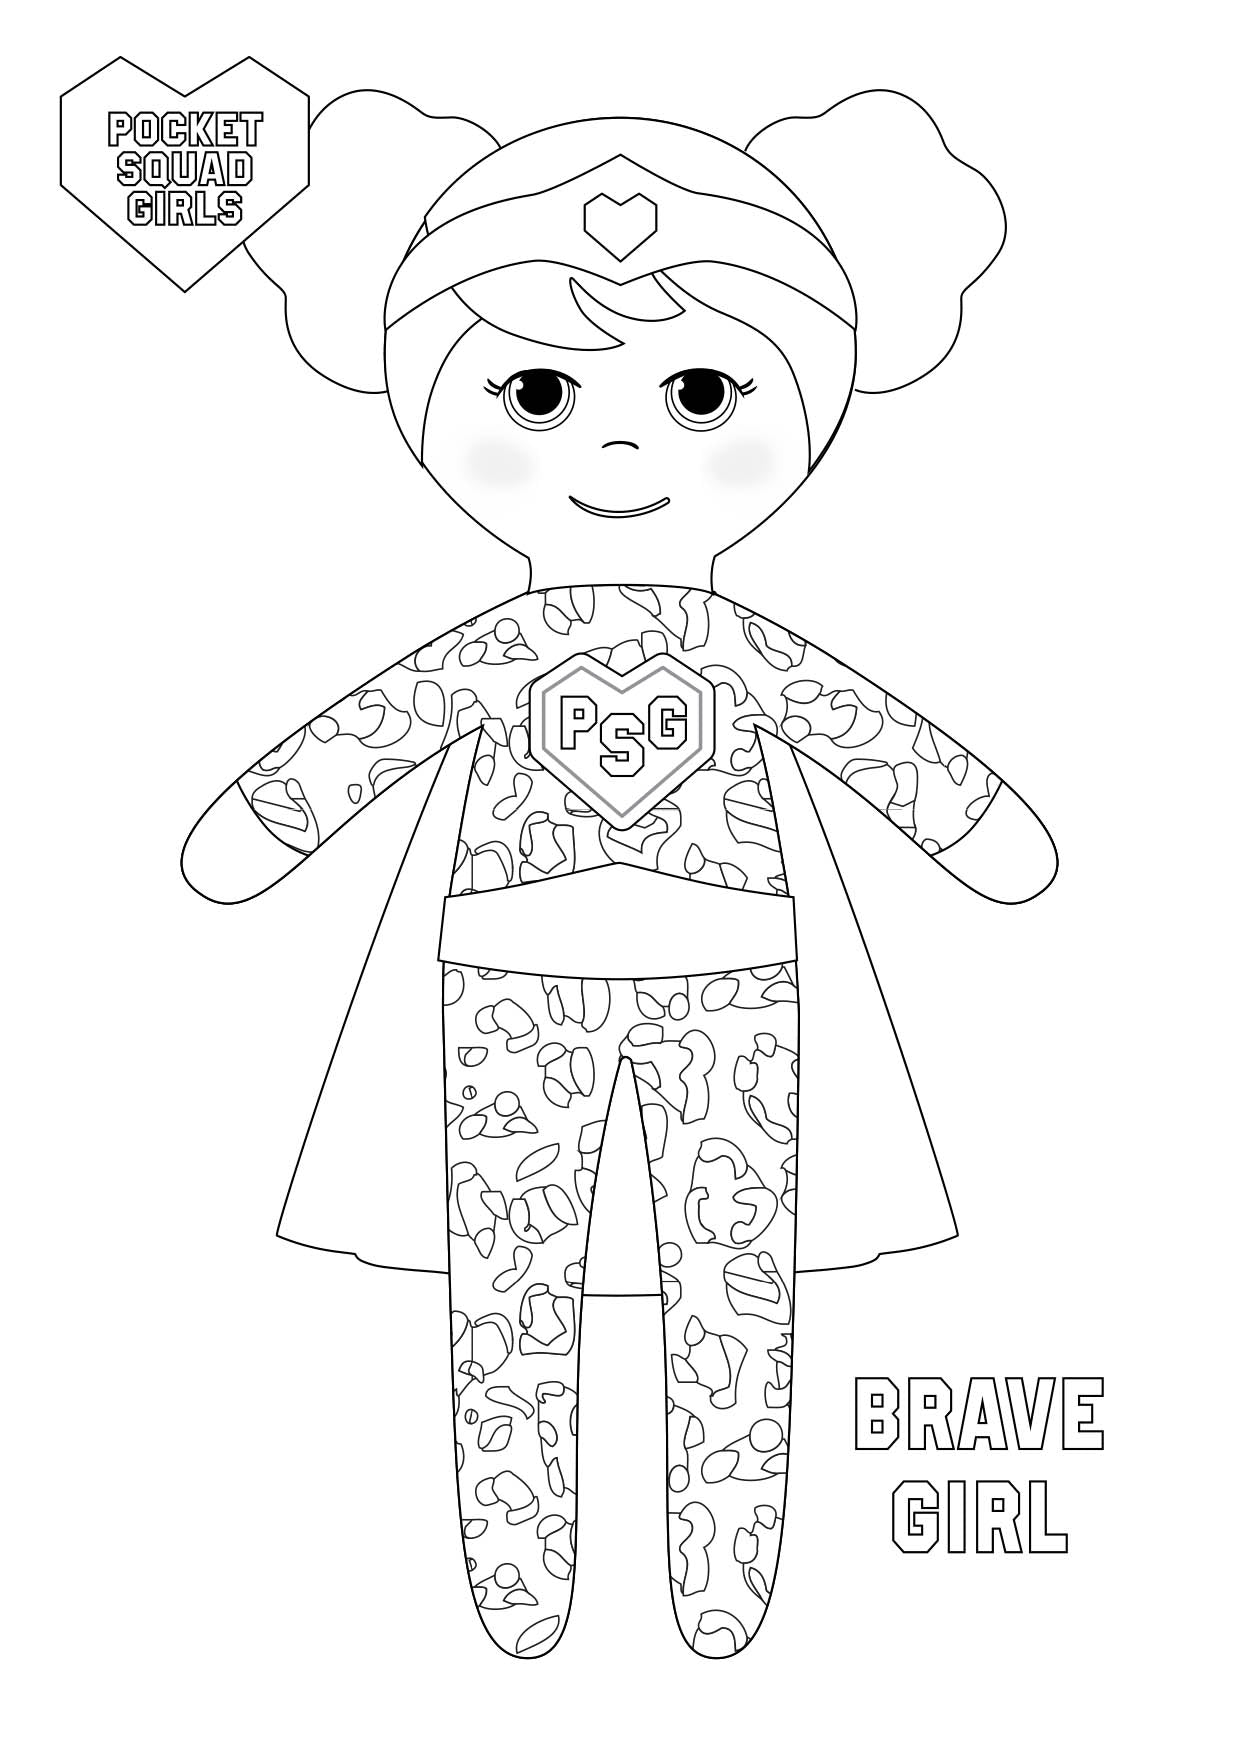 Pocket Squad Girls Brave Girl colouring-in PDF